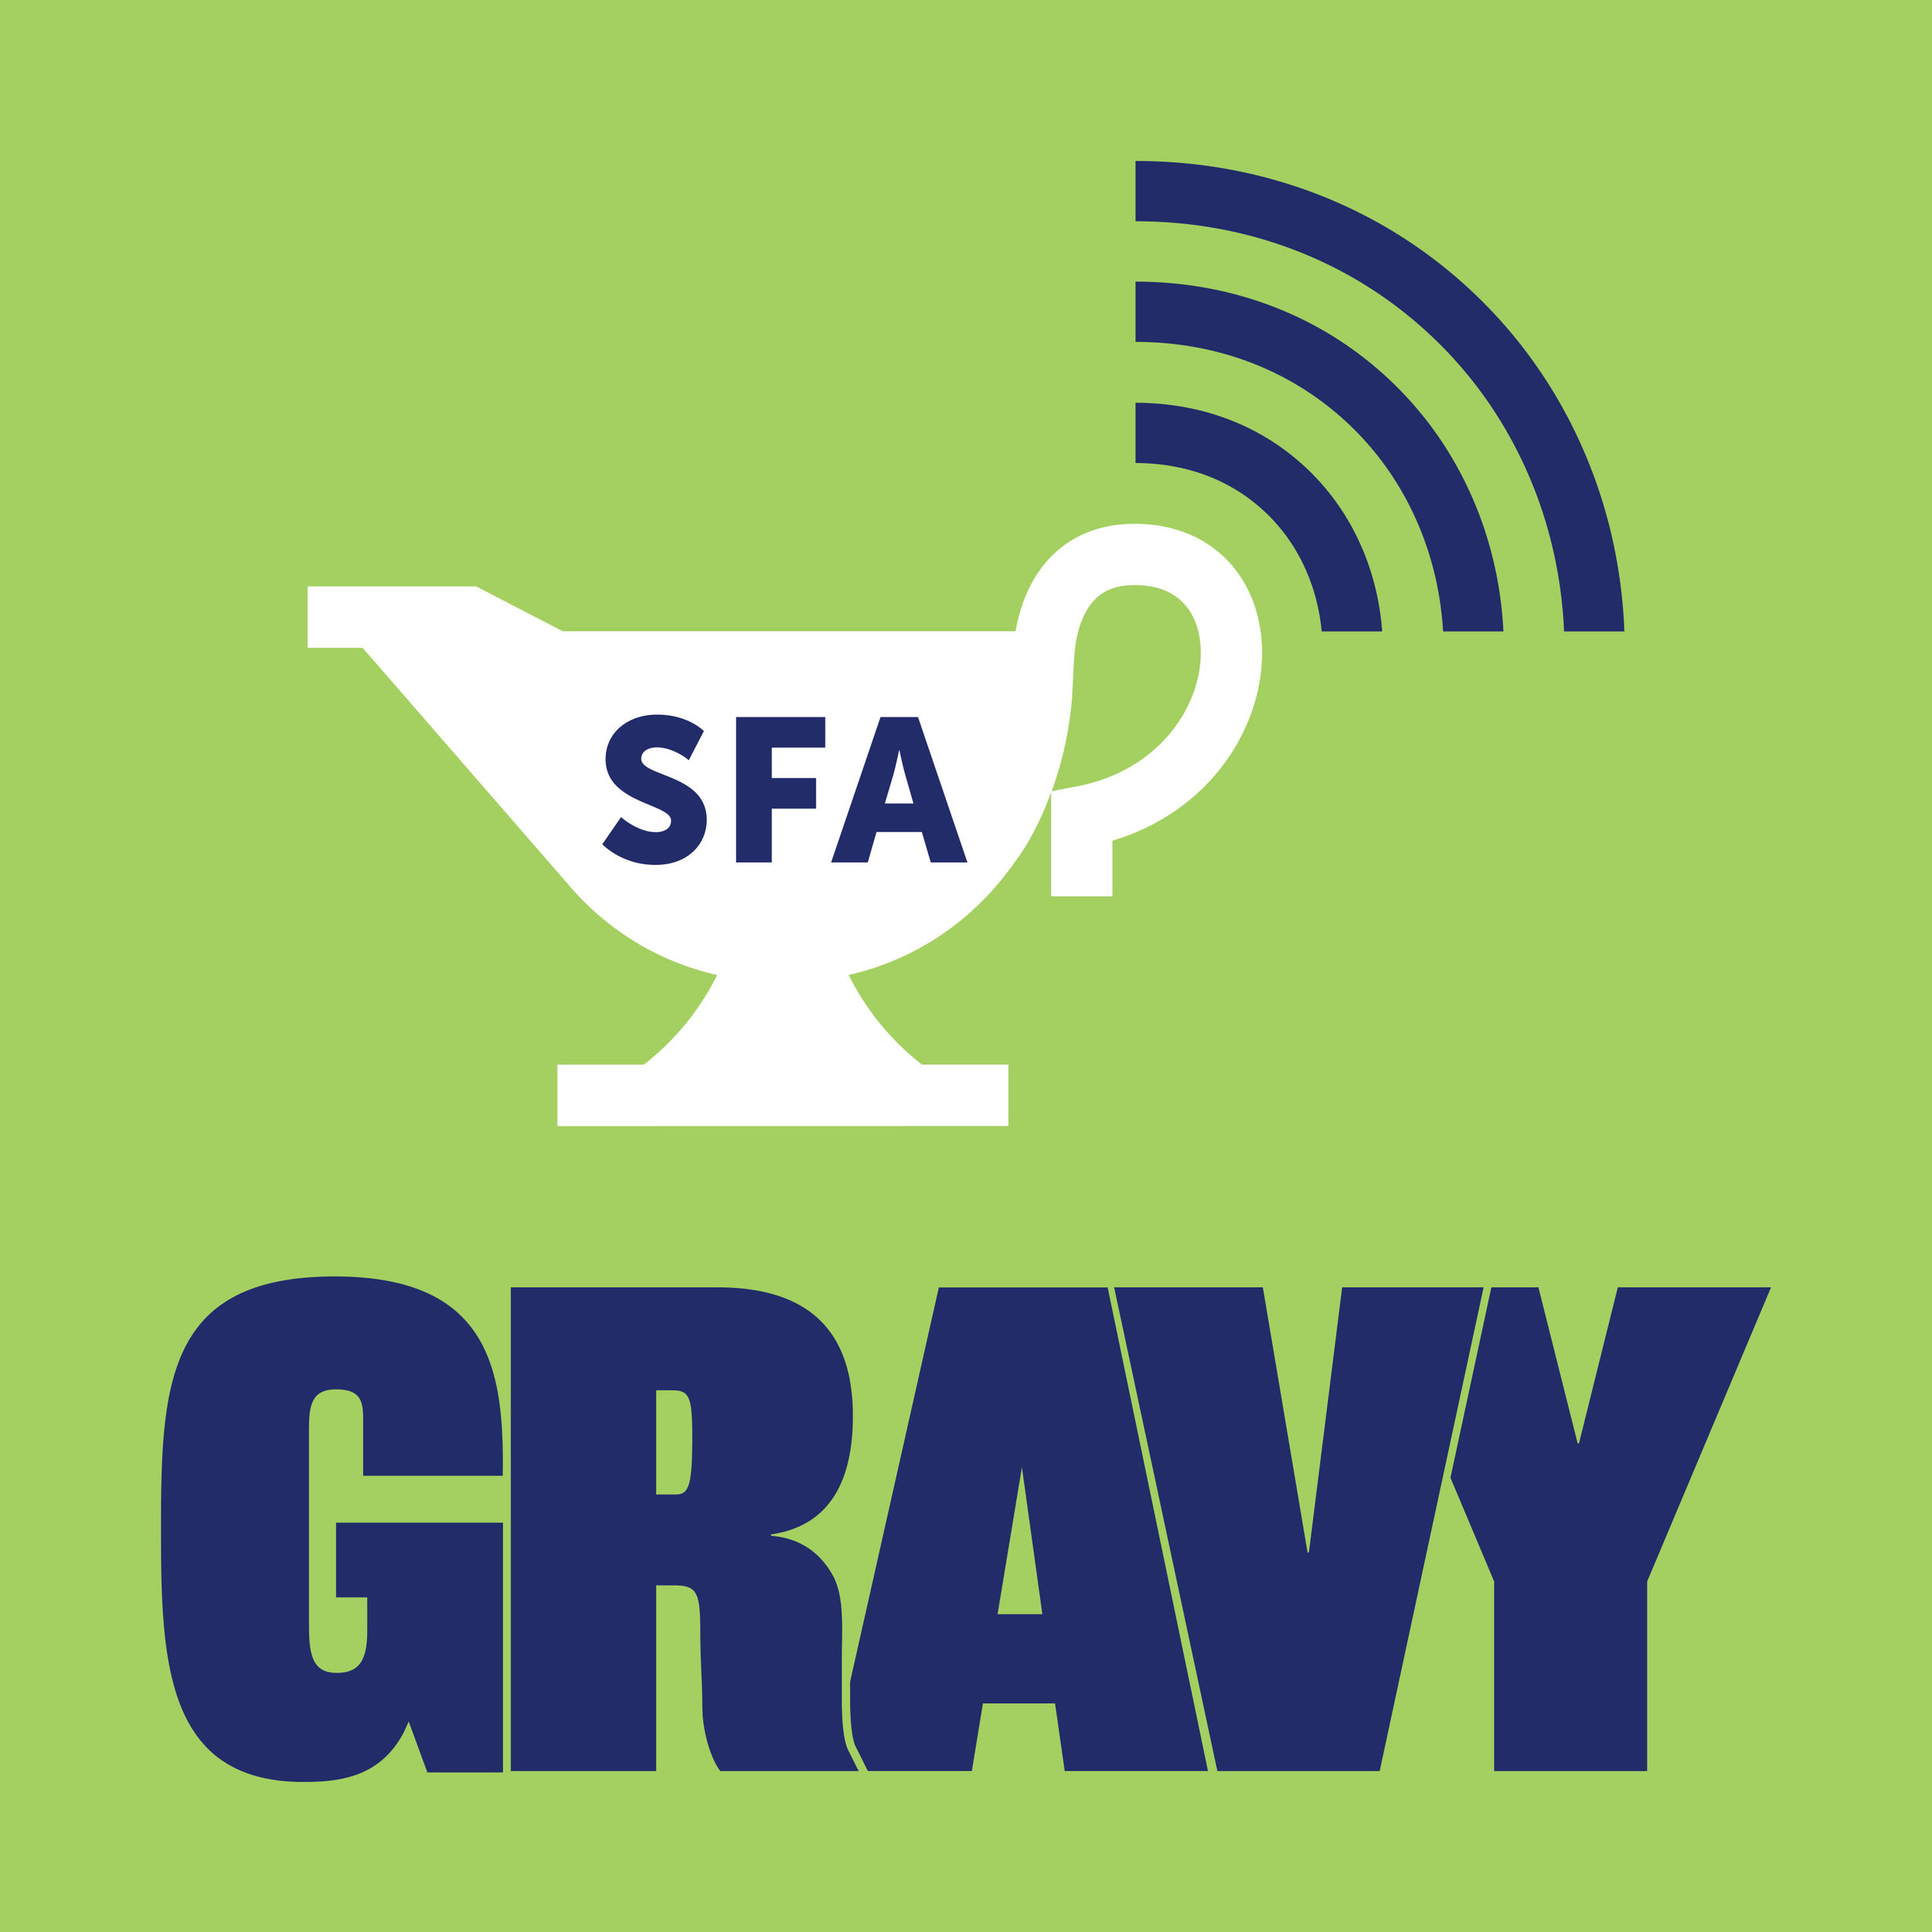 Gravy shares stories of the changing American South through the foods we eat. Gravy showcases a South that is constantly evolving, accommodating new immigrants, adopting new traditions, and lovingly maintaining old ones.